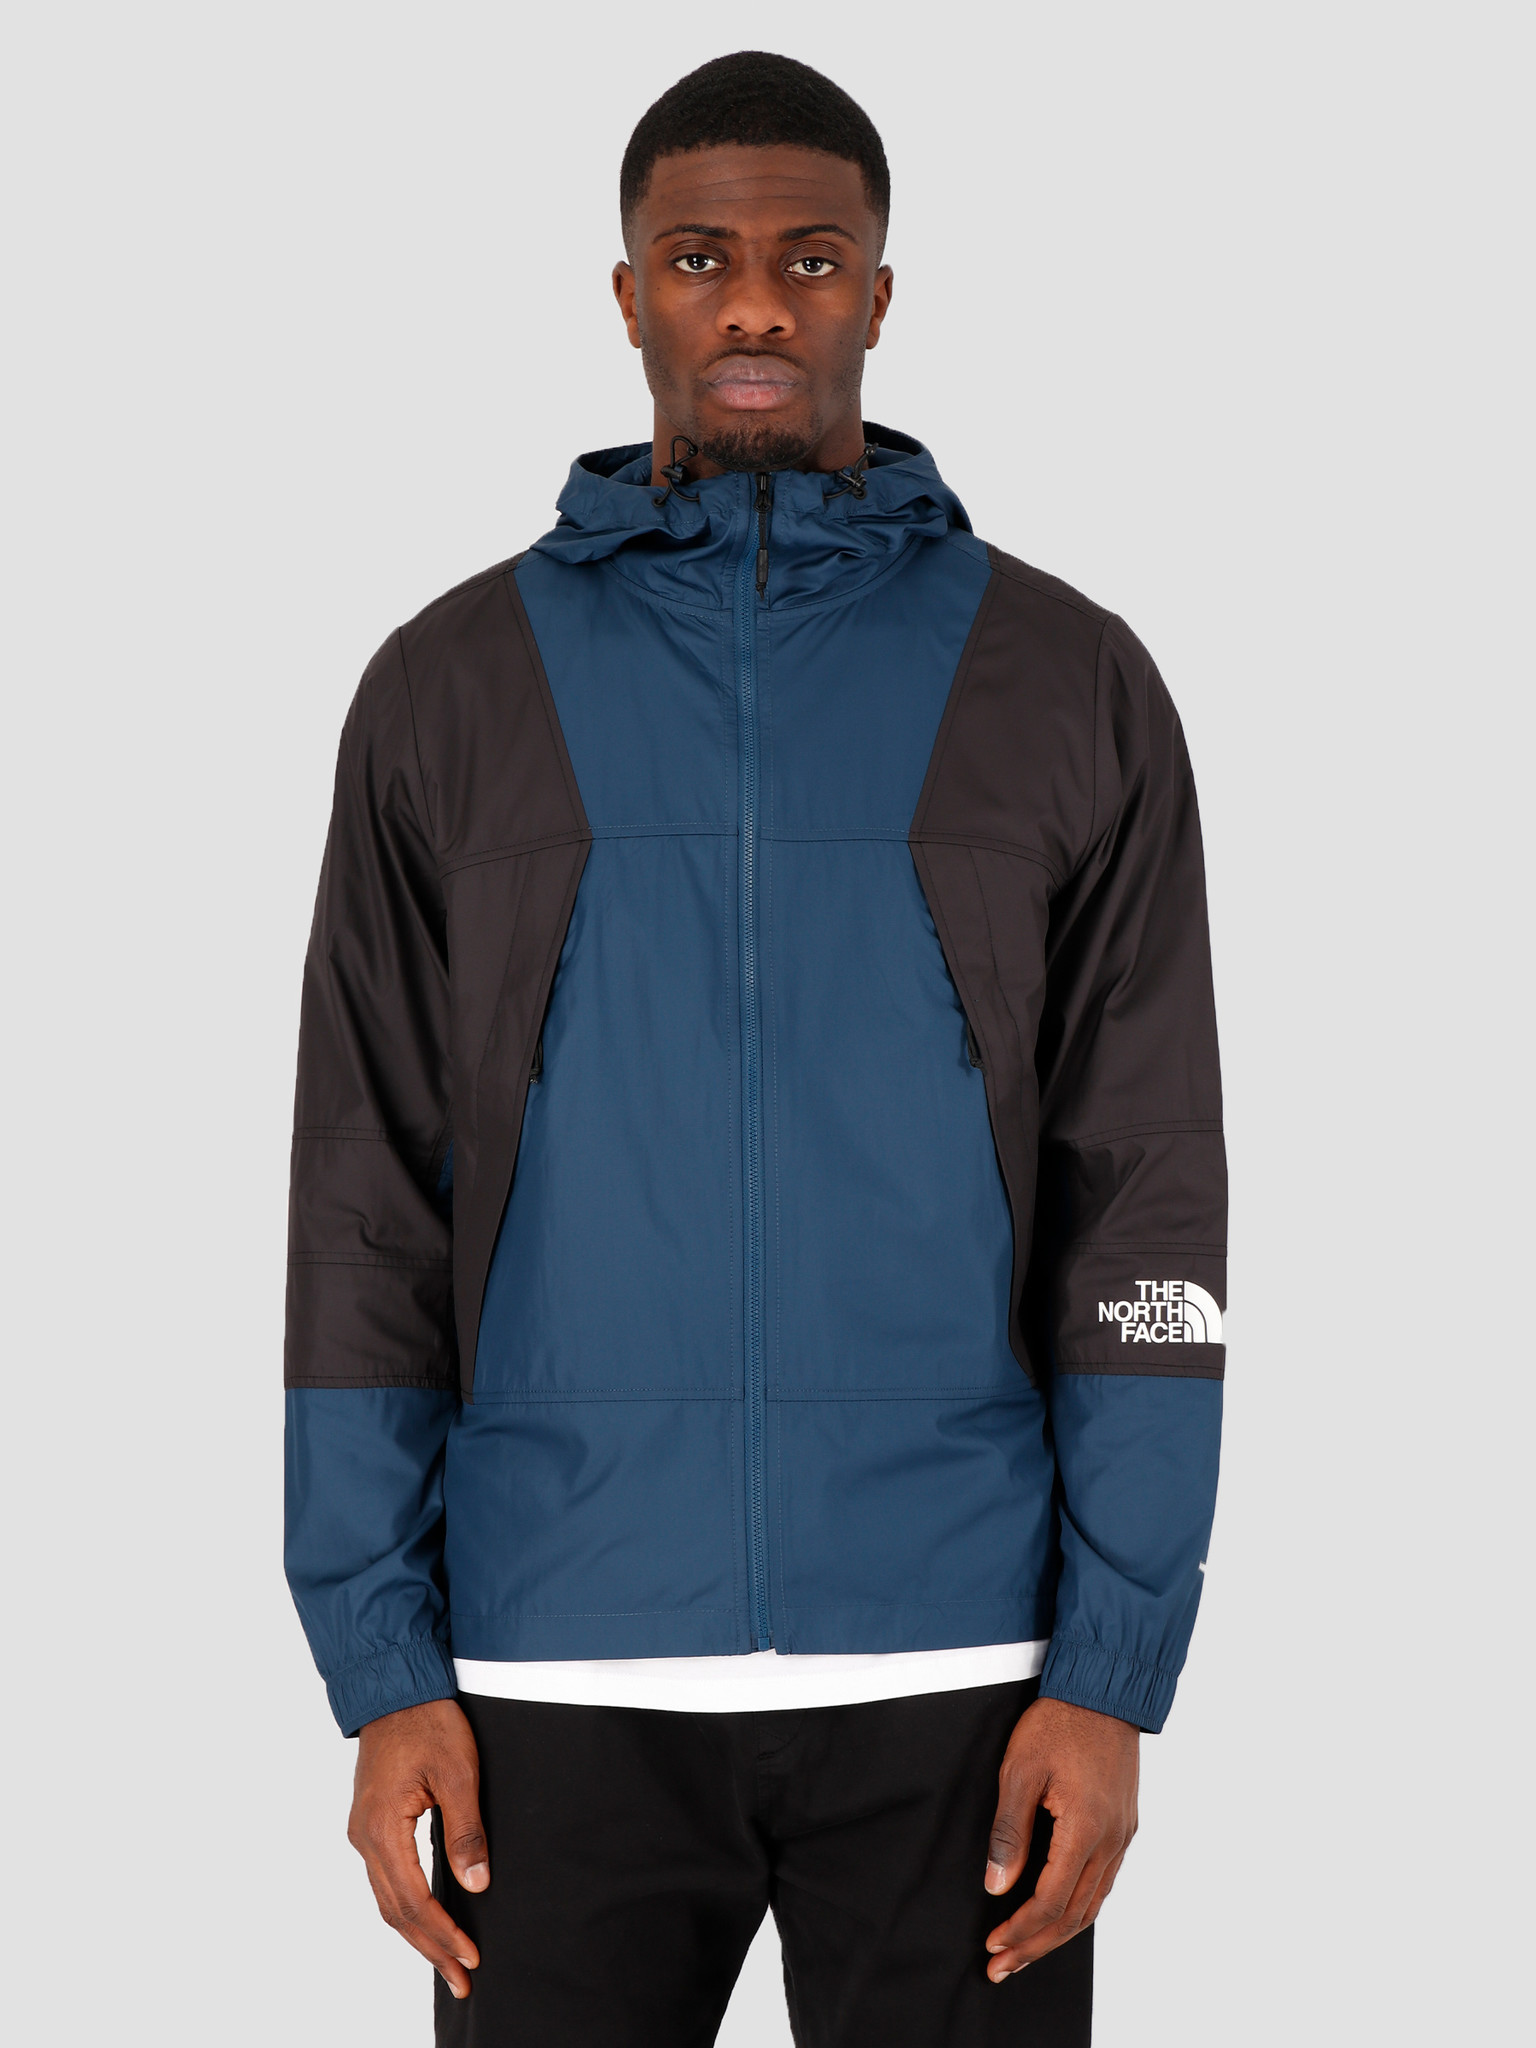 The North Face The North Face Mountain Light Windshell Jacket Blue Wing Teal NF0A3RYSN4L1